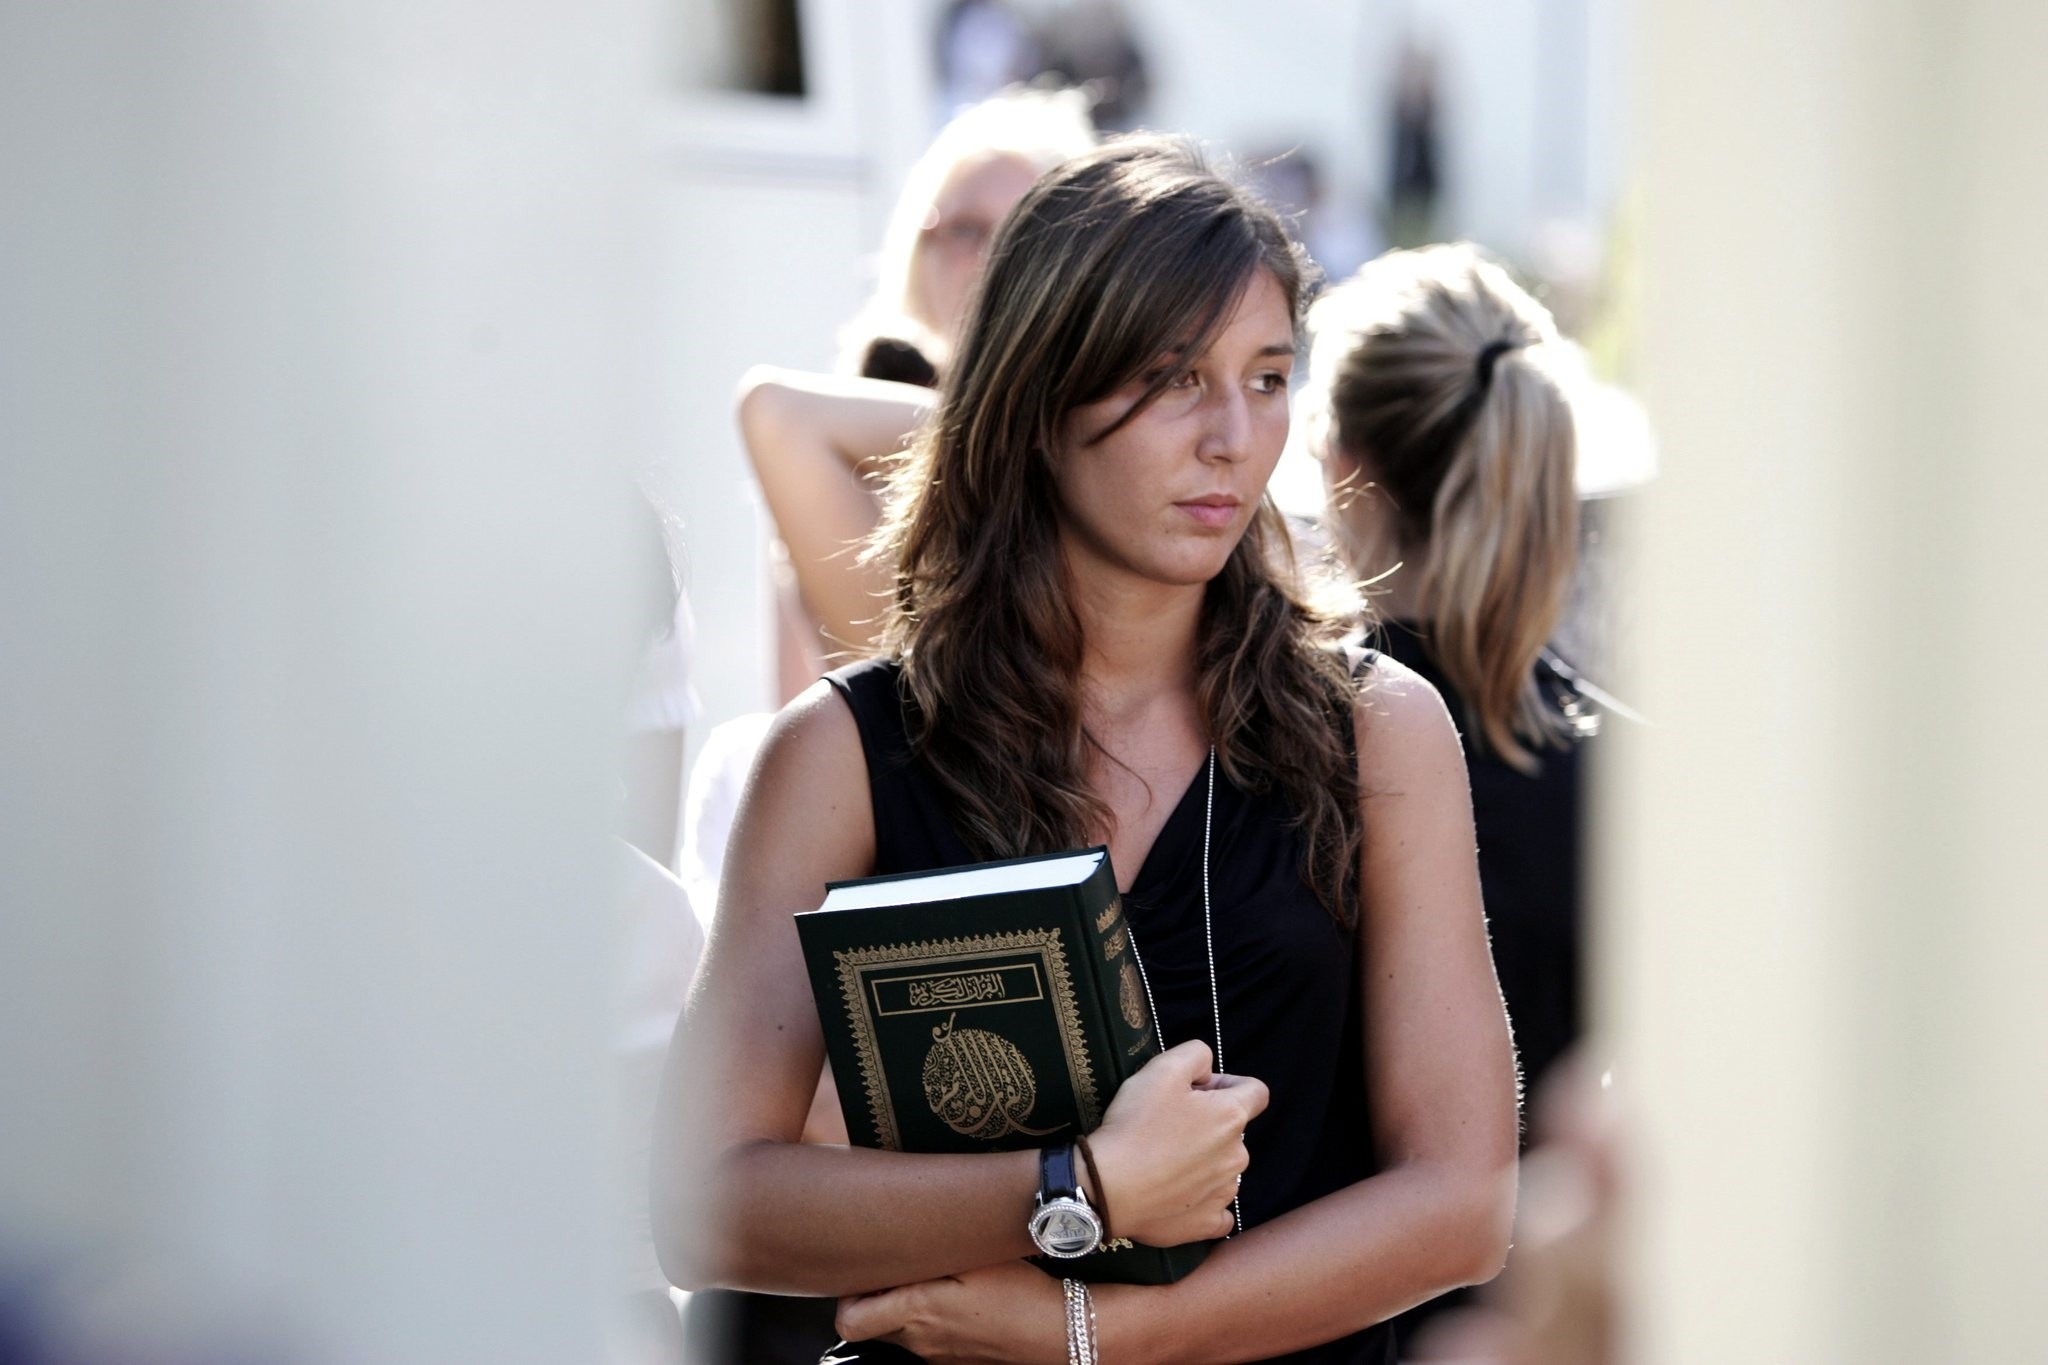 A  woman holds a copy of the Koran after a meeting with Libyan leader Moammar Gadhafi, at the Libyan Academy near the Libyan ambassador's residence in Rome, Sunday, Aug. 29, 2010. (AP Photo)